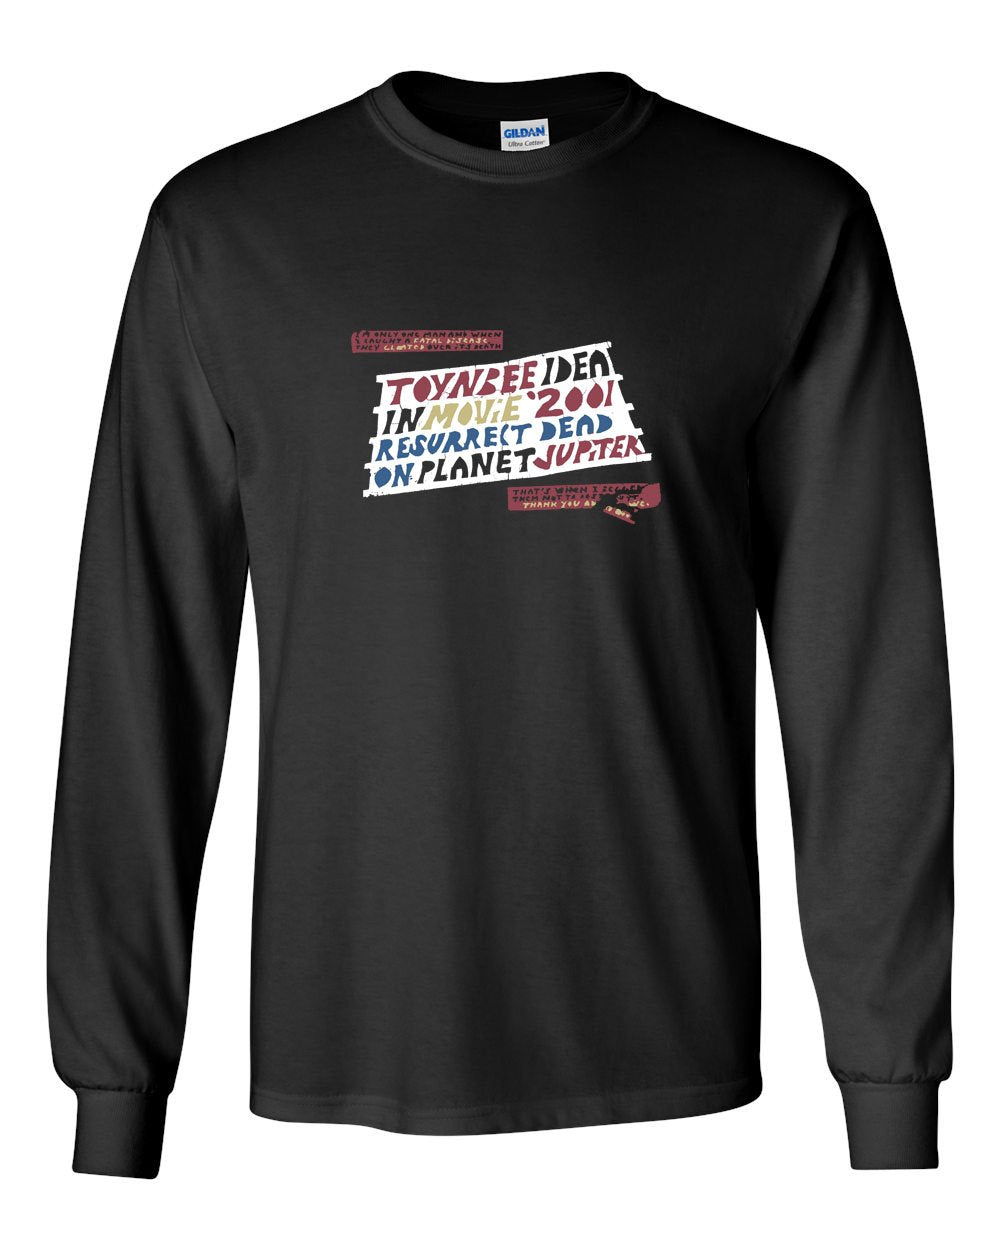 Toynbee MENS Long Sleeve Heavy Cotton T-Shirt